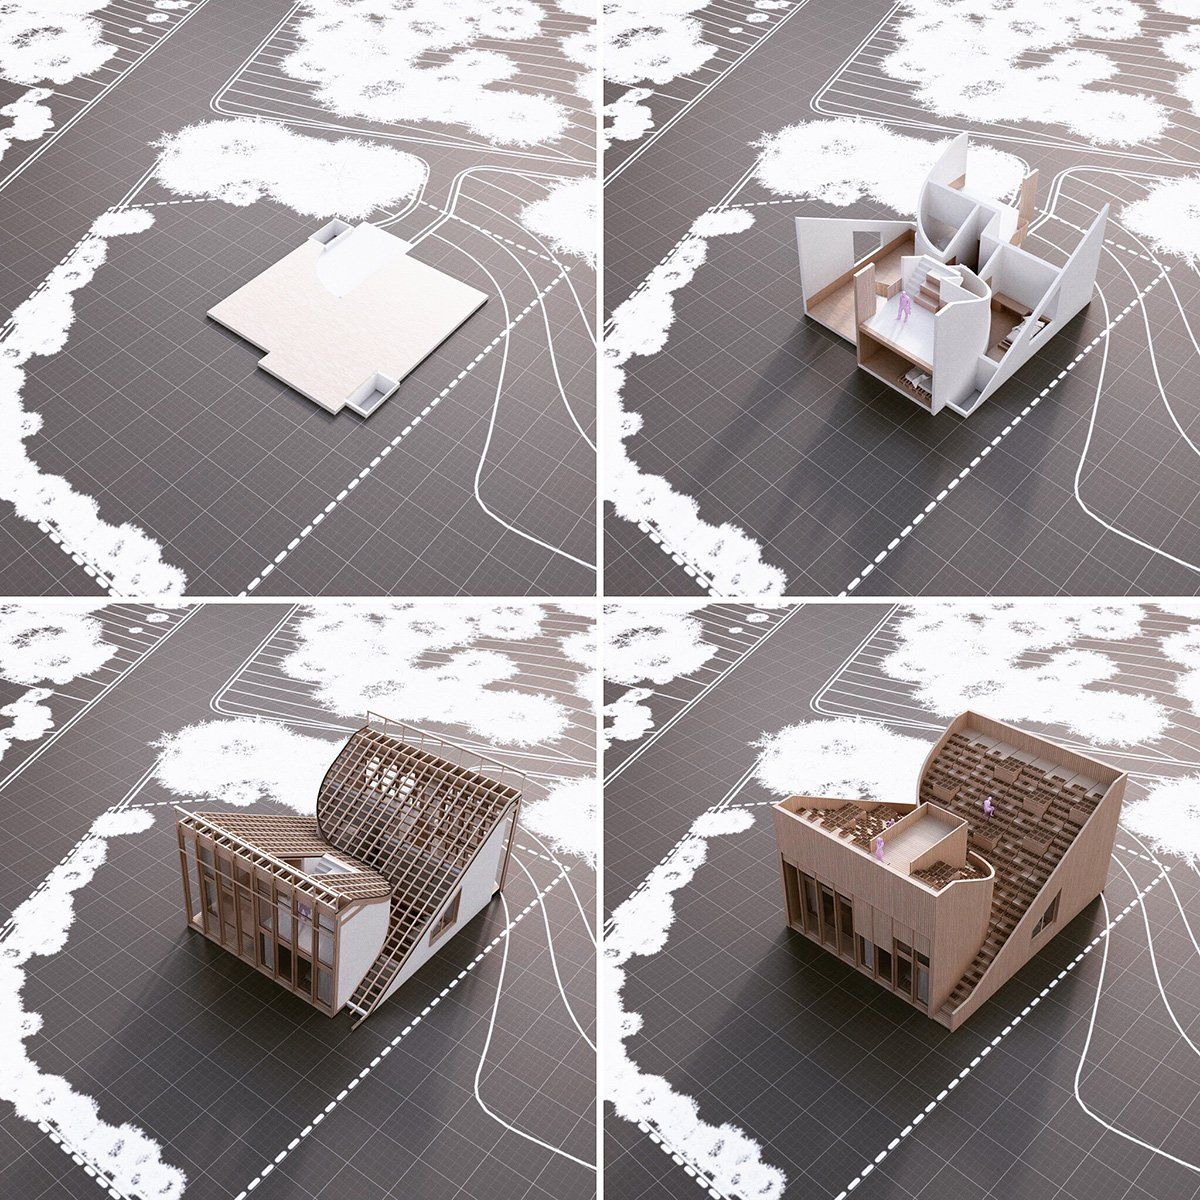 penda plans 'yin  yang house' for a family that wants to